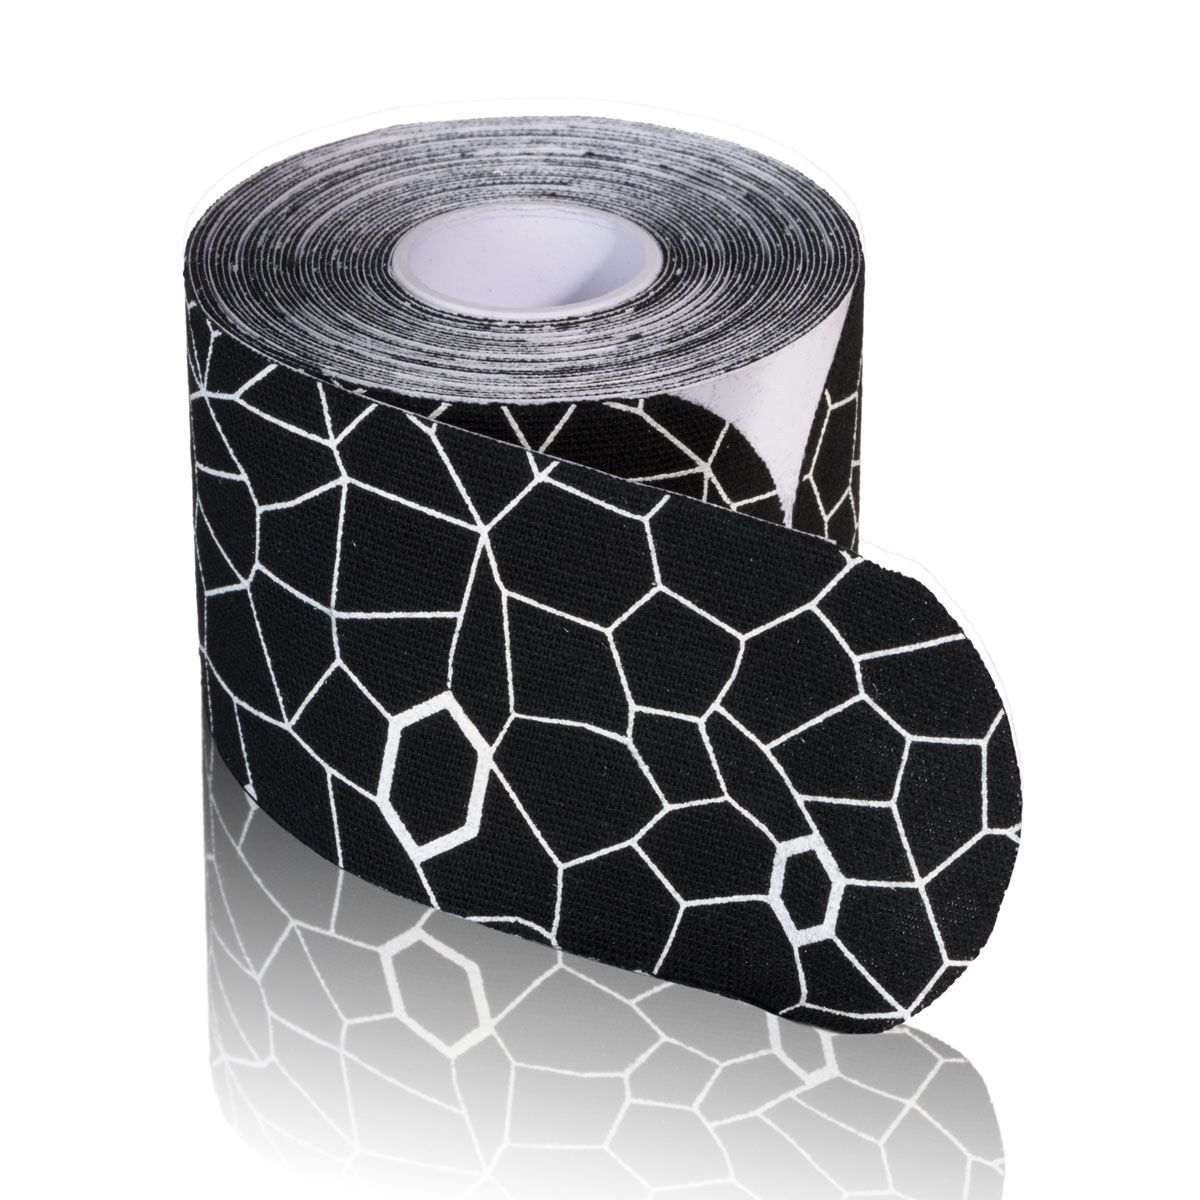 TheraBand Kinesiology Tape, 20 pack, 2 in x 10 in, Black/White